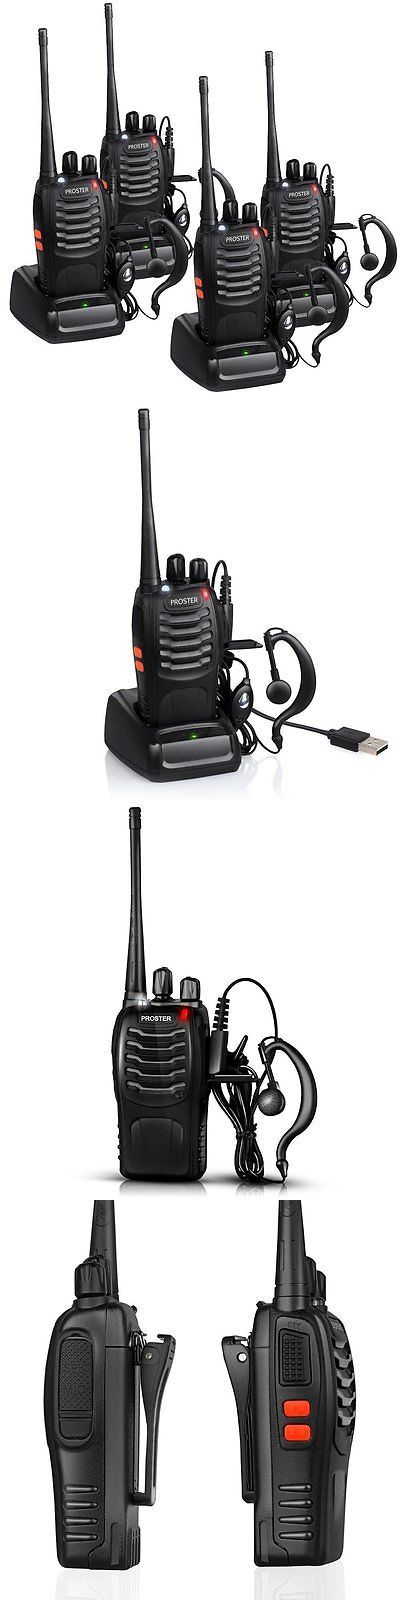 Walkie Talkies Two-Way Radios: Proster 5W Uhf 400-470 Mhz Ctcss Dcs 16-Channel Two Way Radio Walky Talky With 2 BUY IT NOW ONLY: $54.25